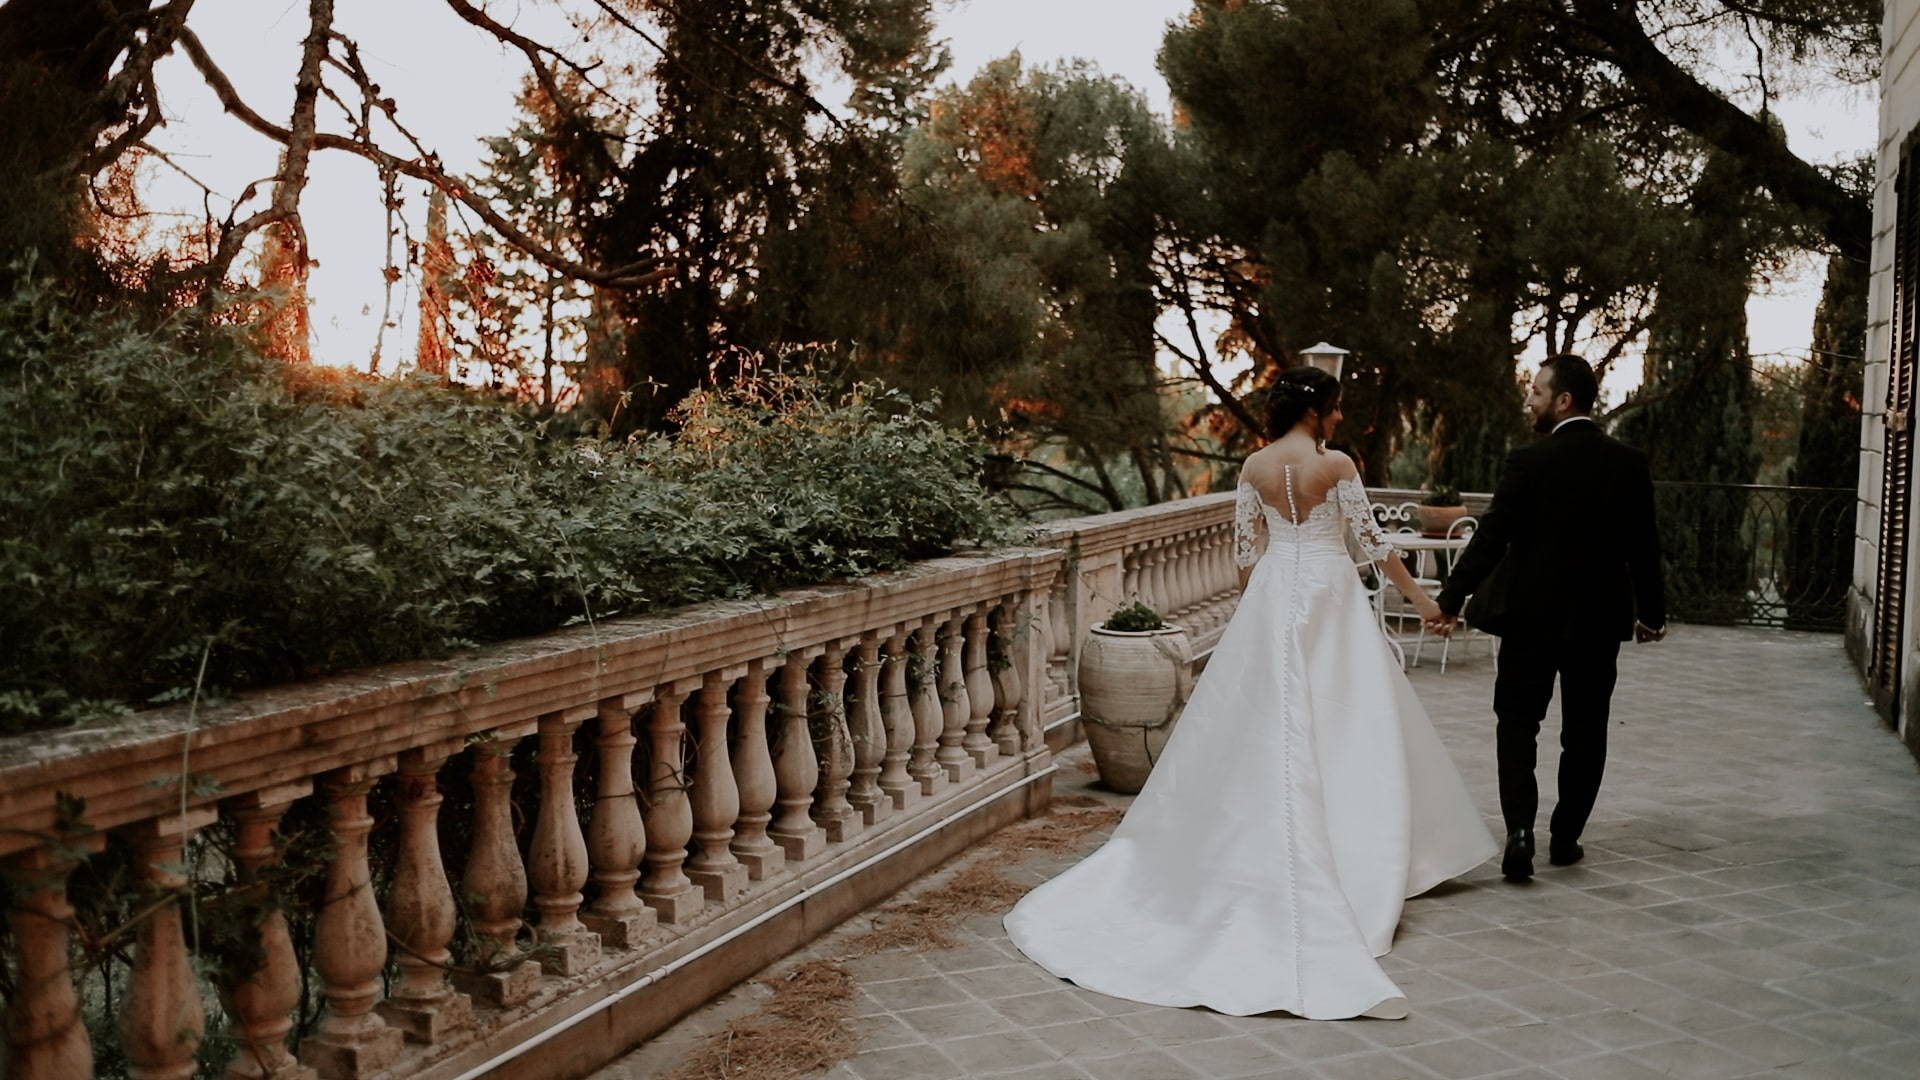 FEDE4840.00_12_44_04.Immagine017 Italian Castle Wedding